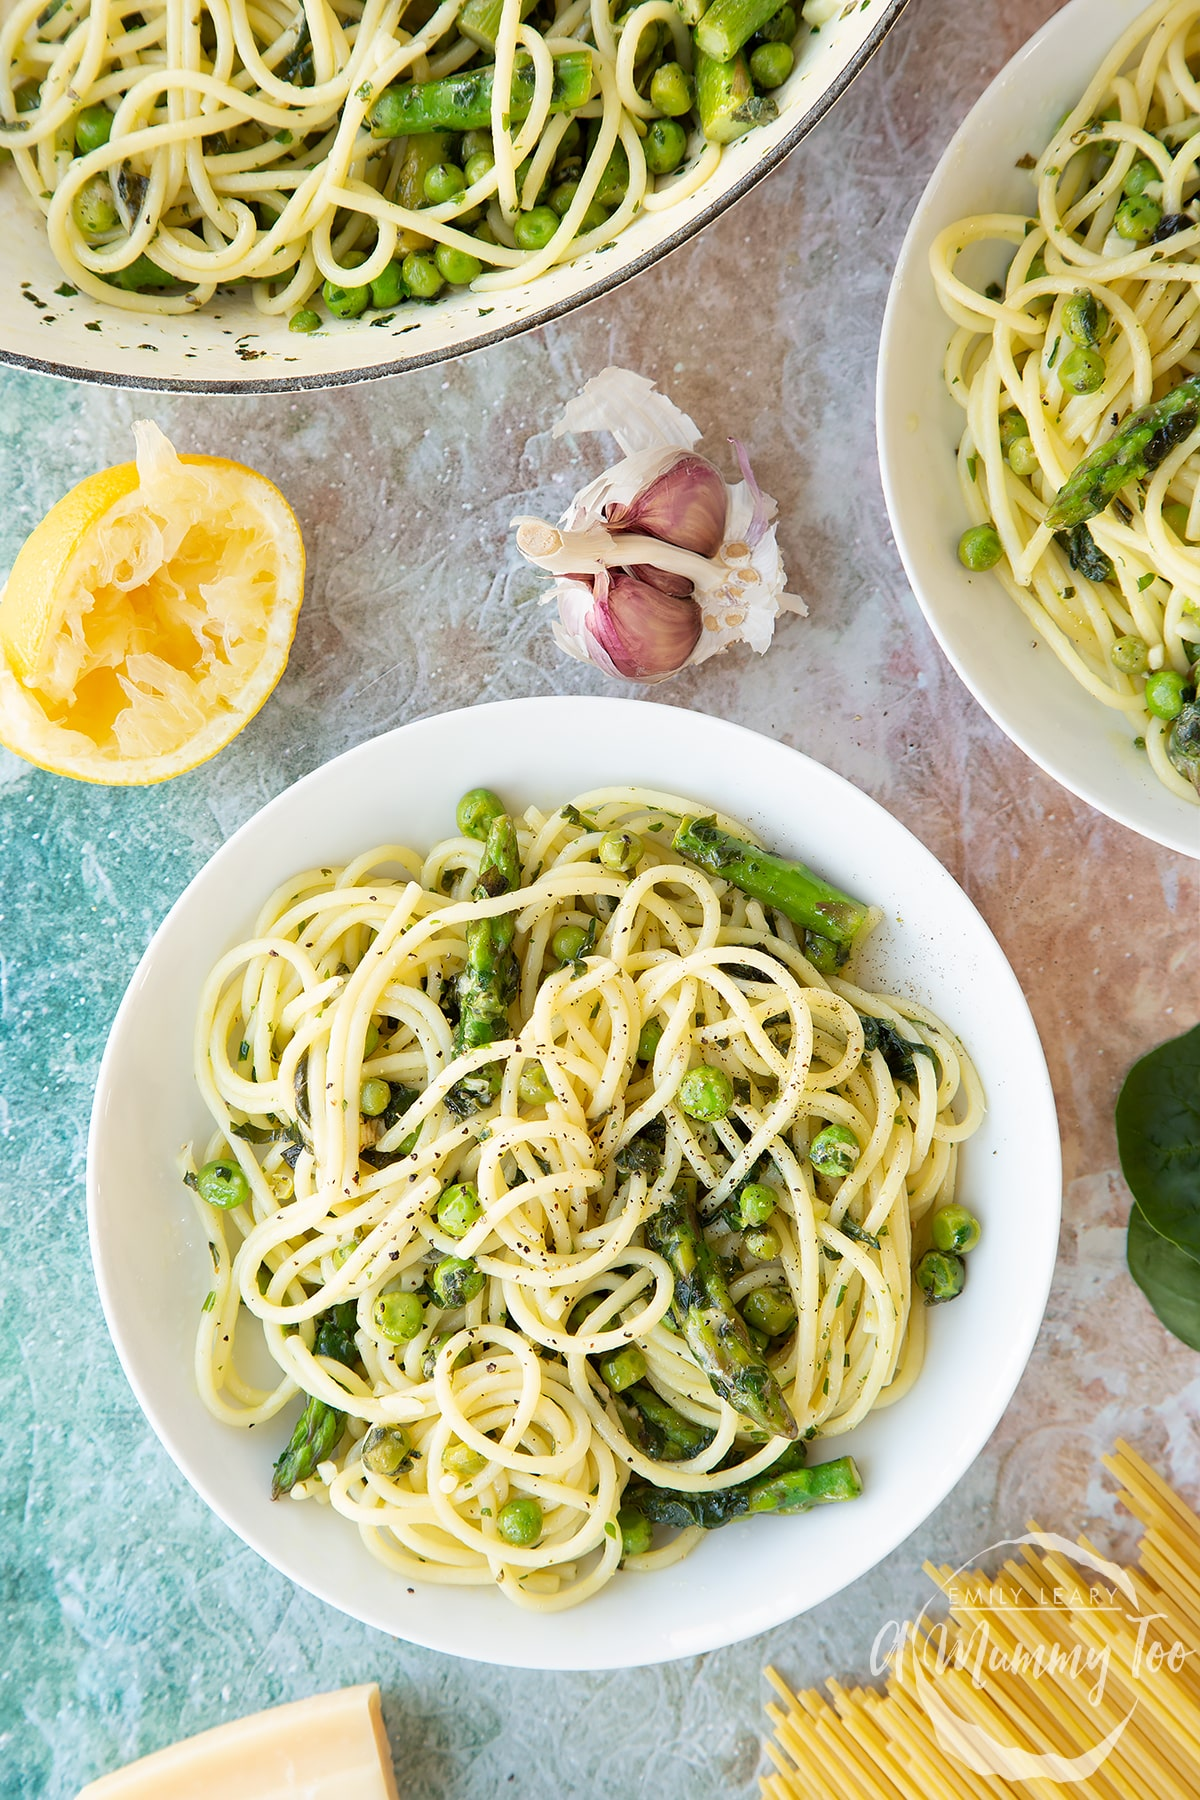 Summer spaghetti with spinach, basil, asparagus and peas, served in white bowls. Shown from above.